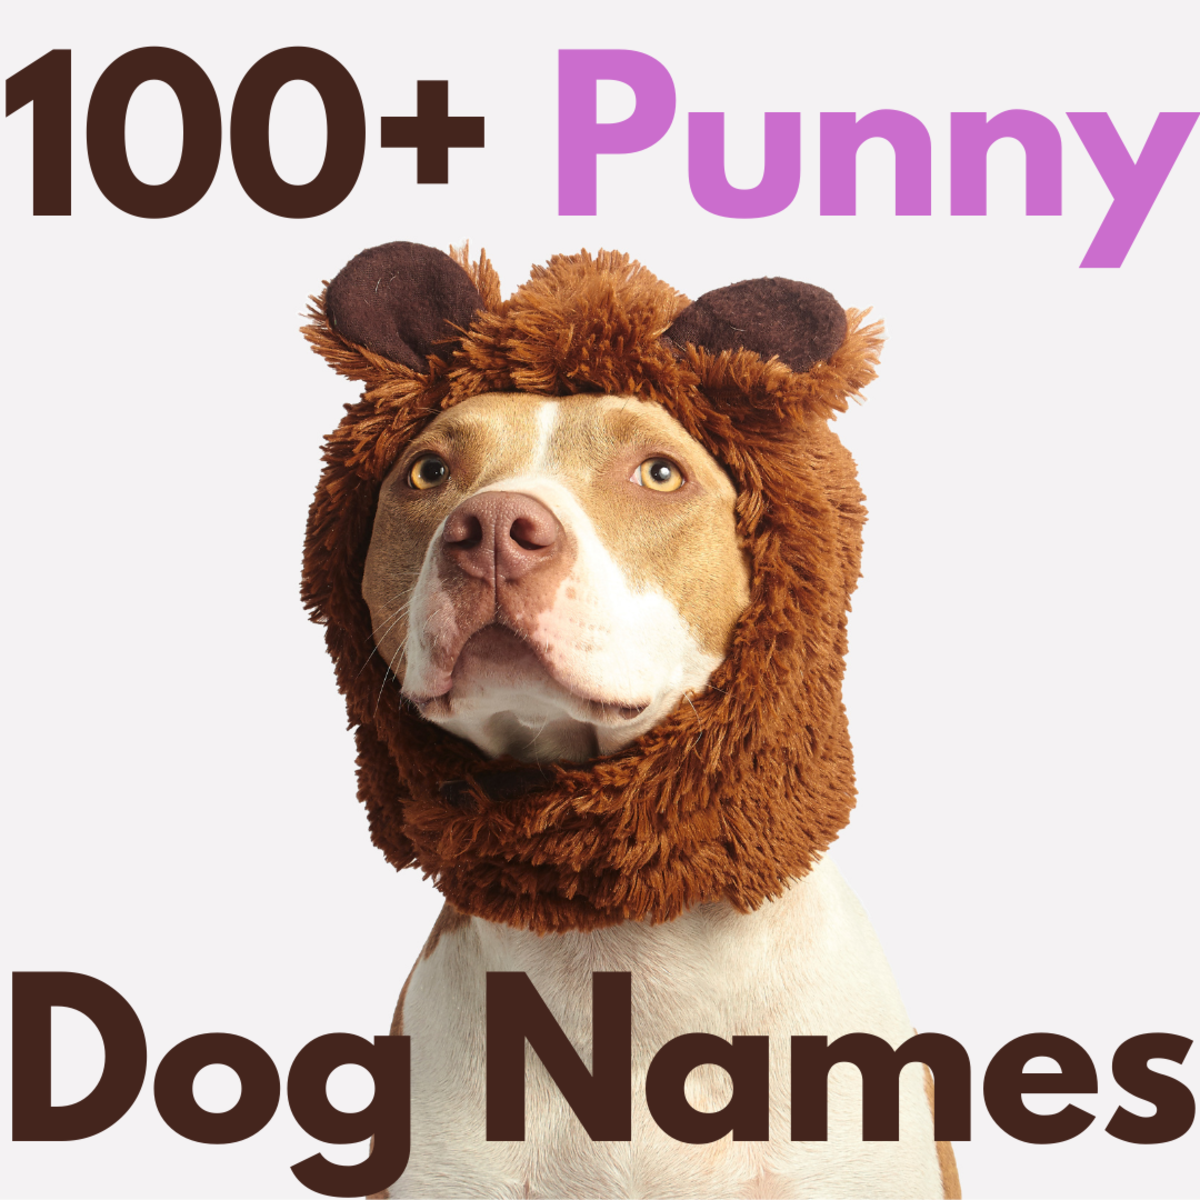 Find a name for your pet that'll make everyone smile.